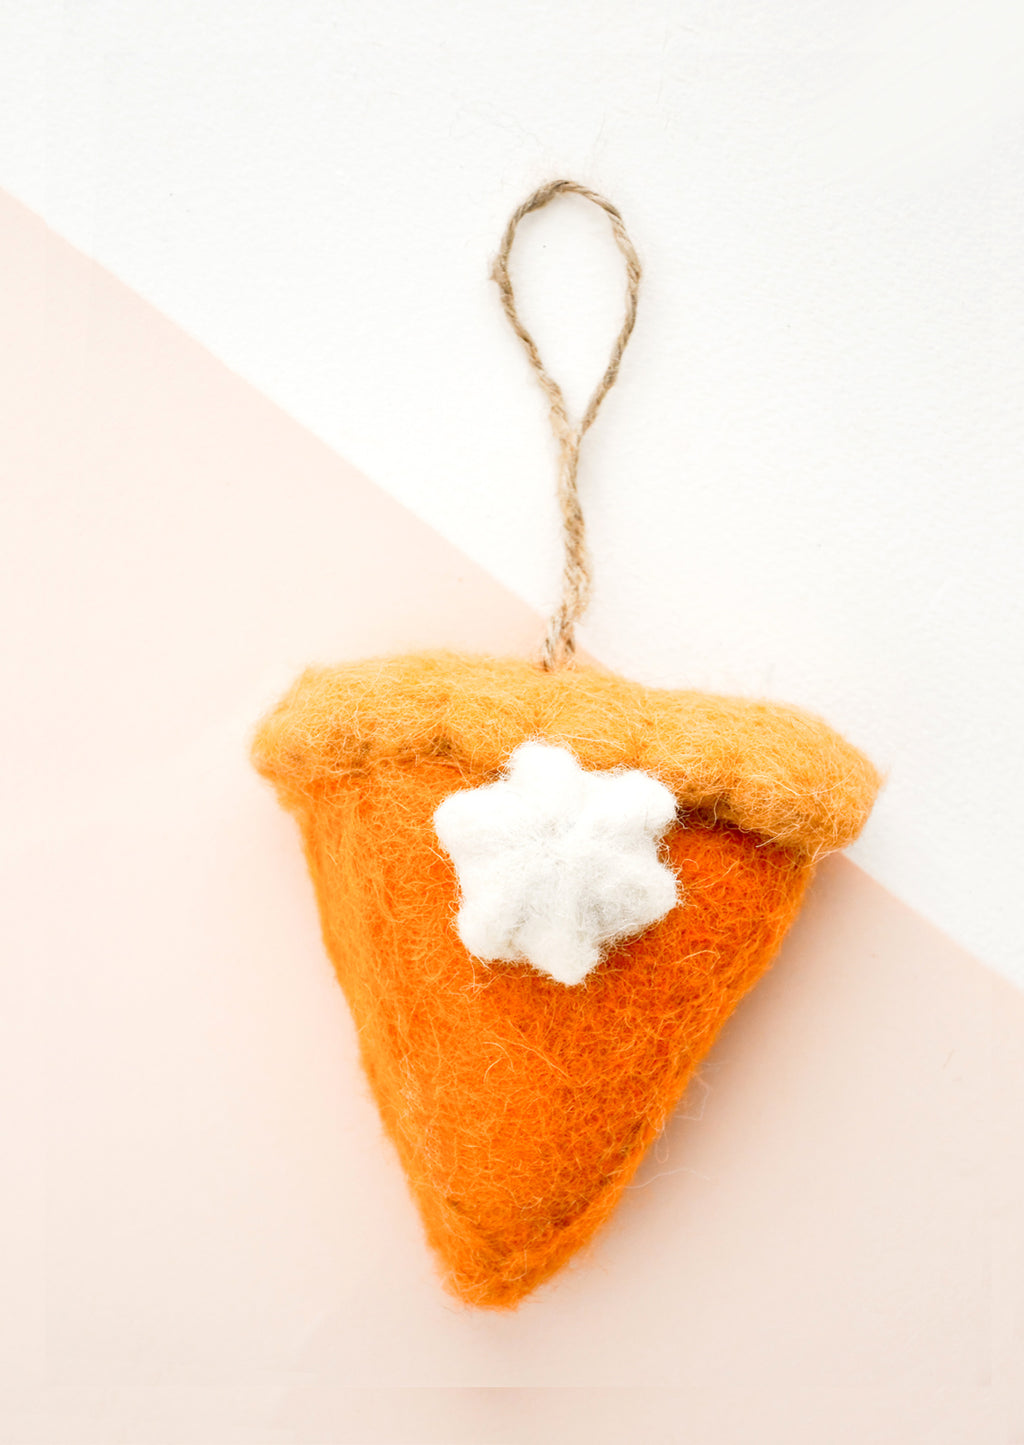 Pumpkin Pie Slice Ornament